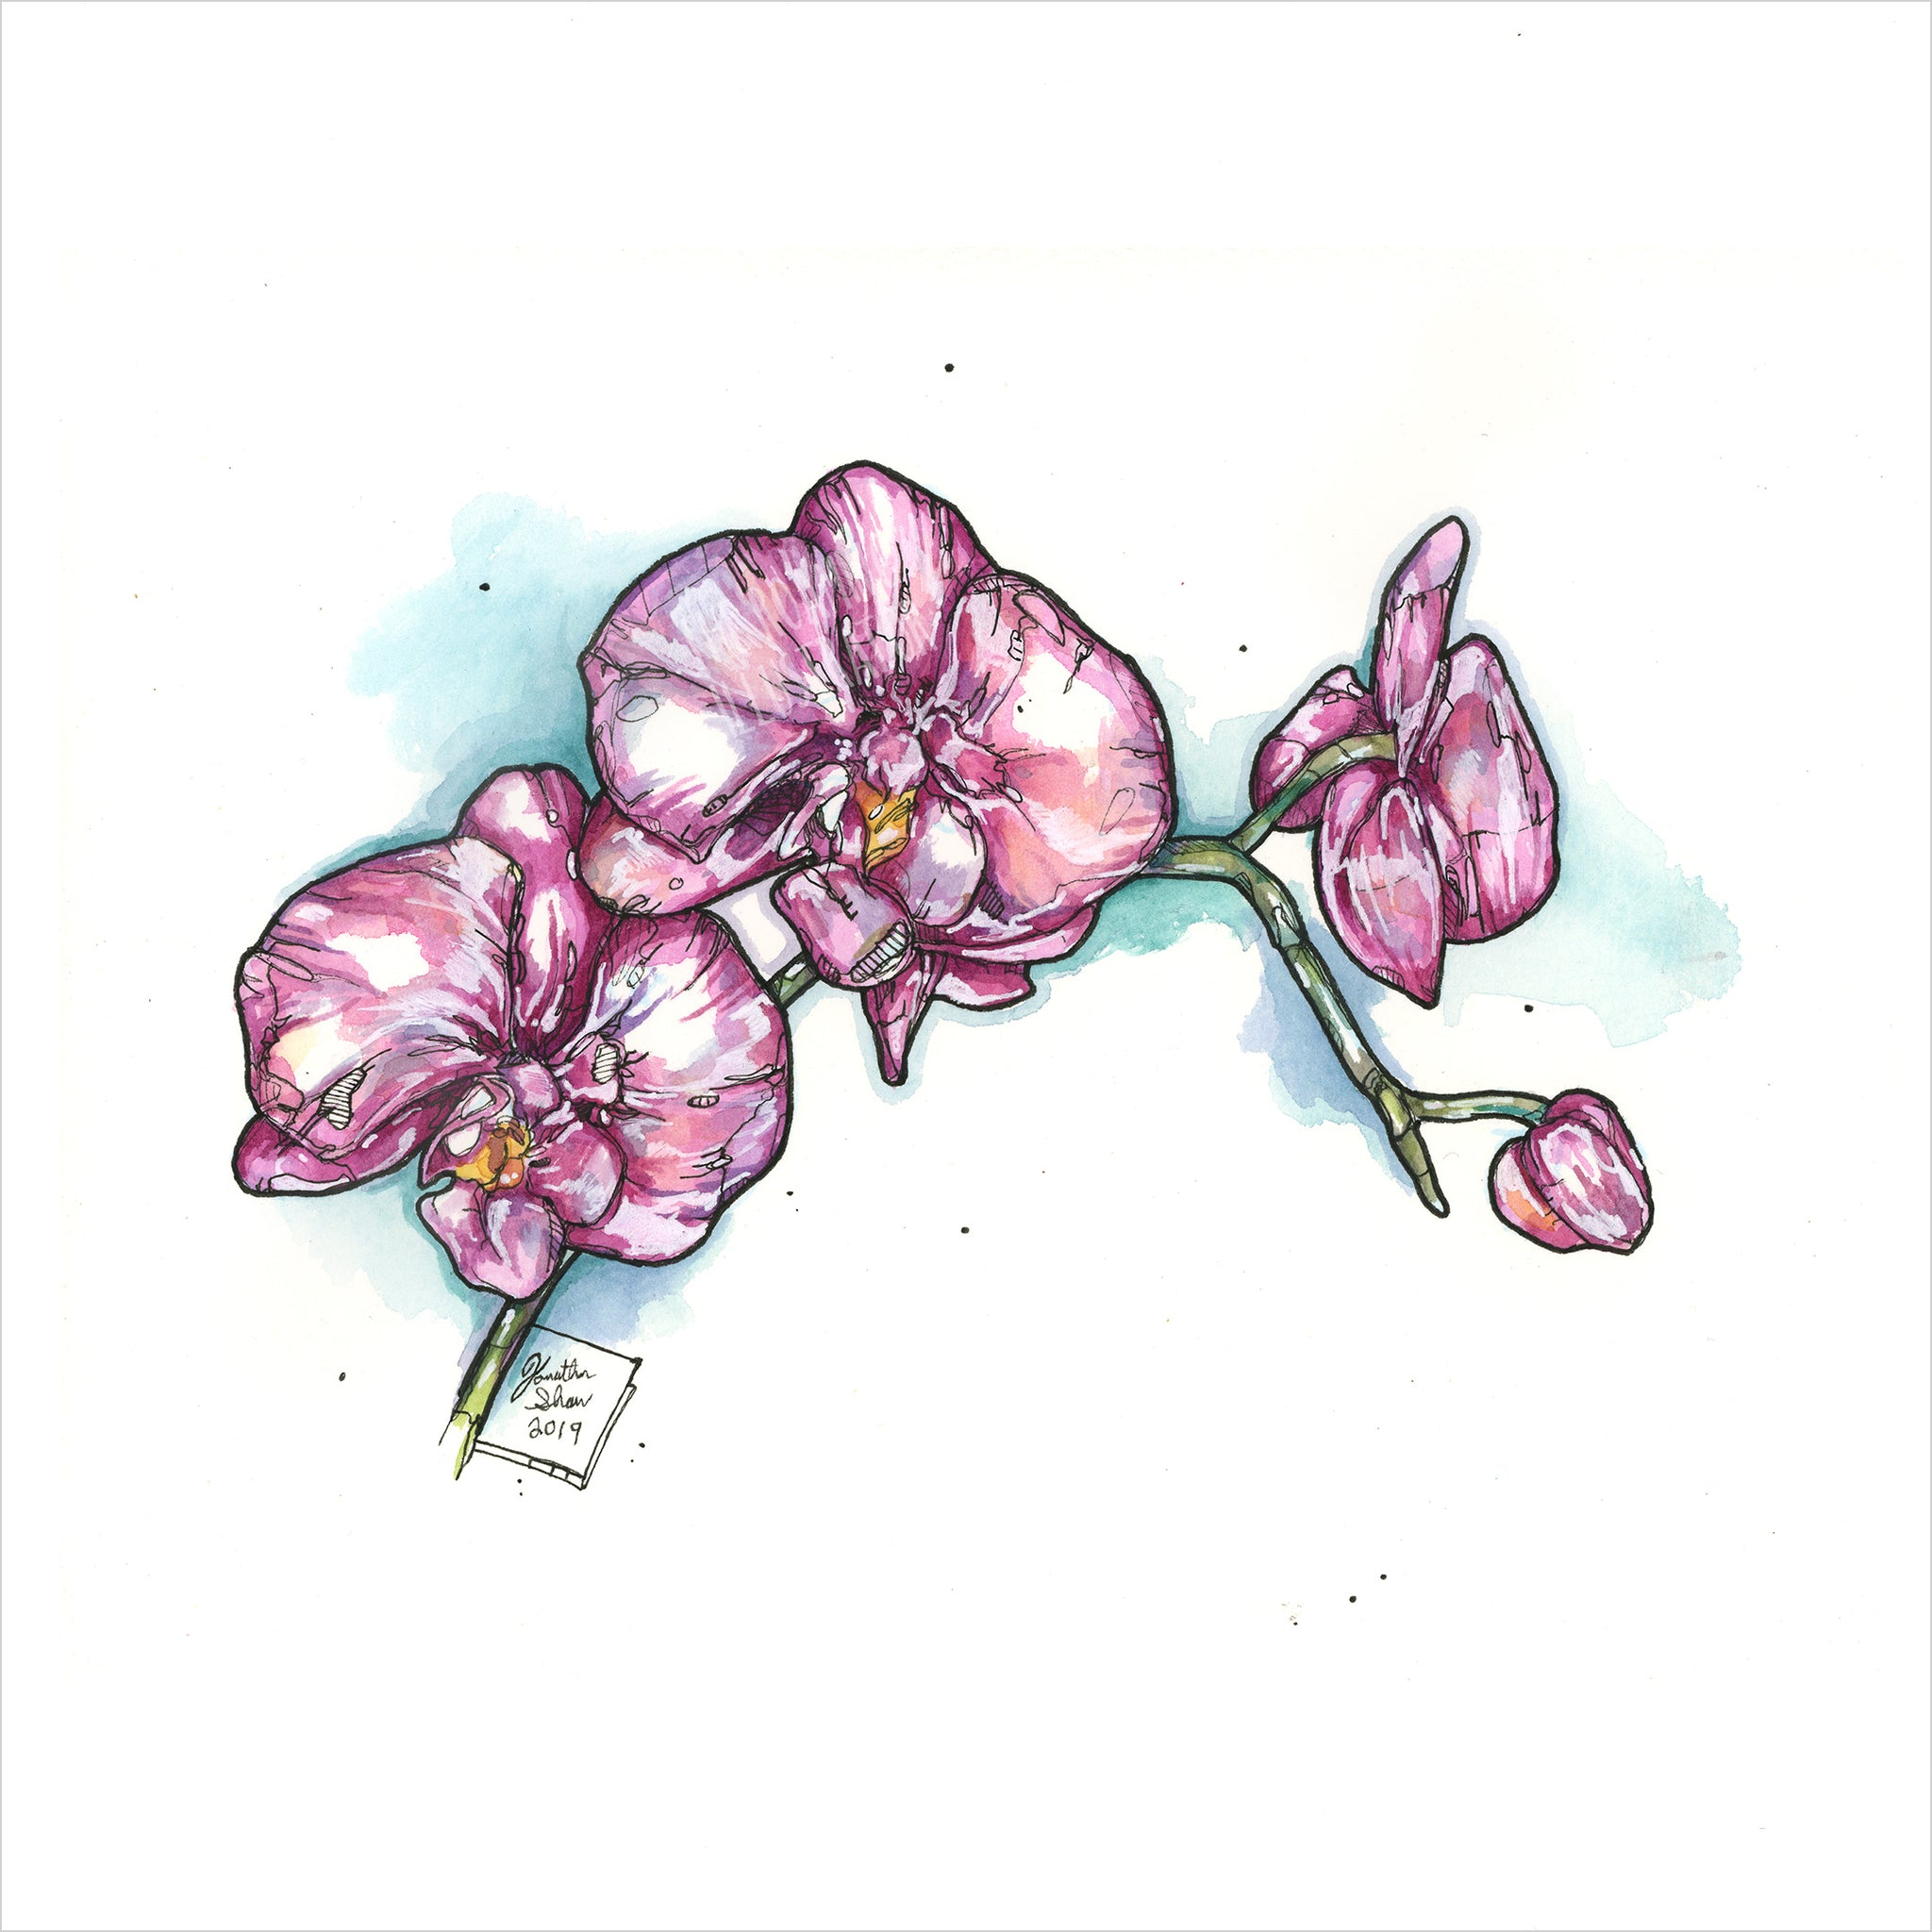 """Orchids"" - 8x10 Reproduction Print"